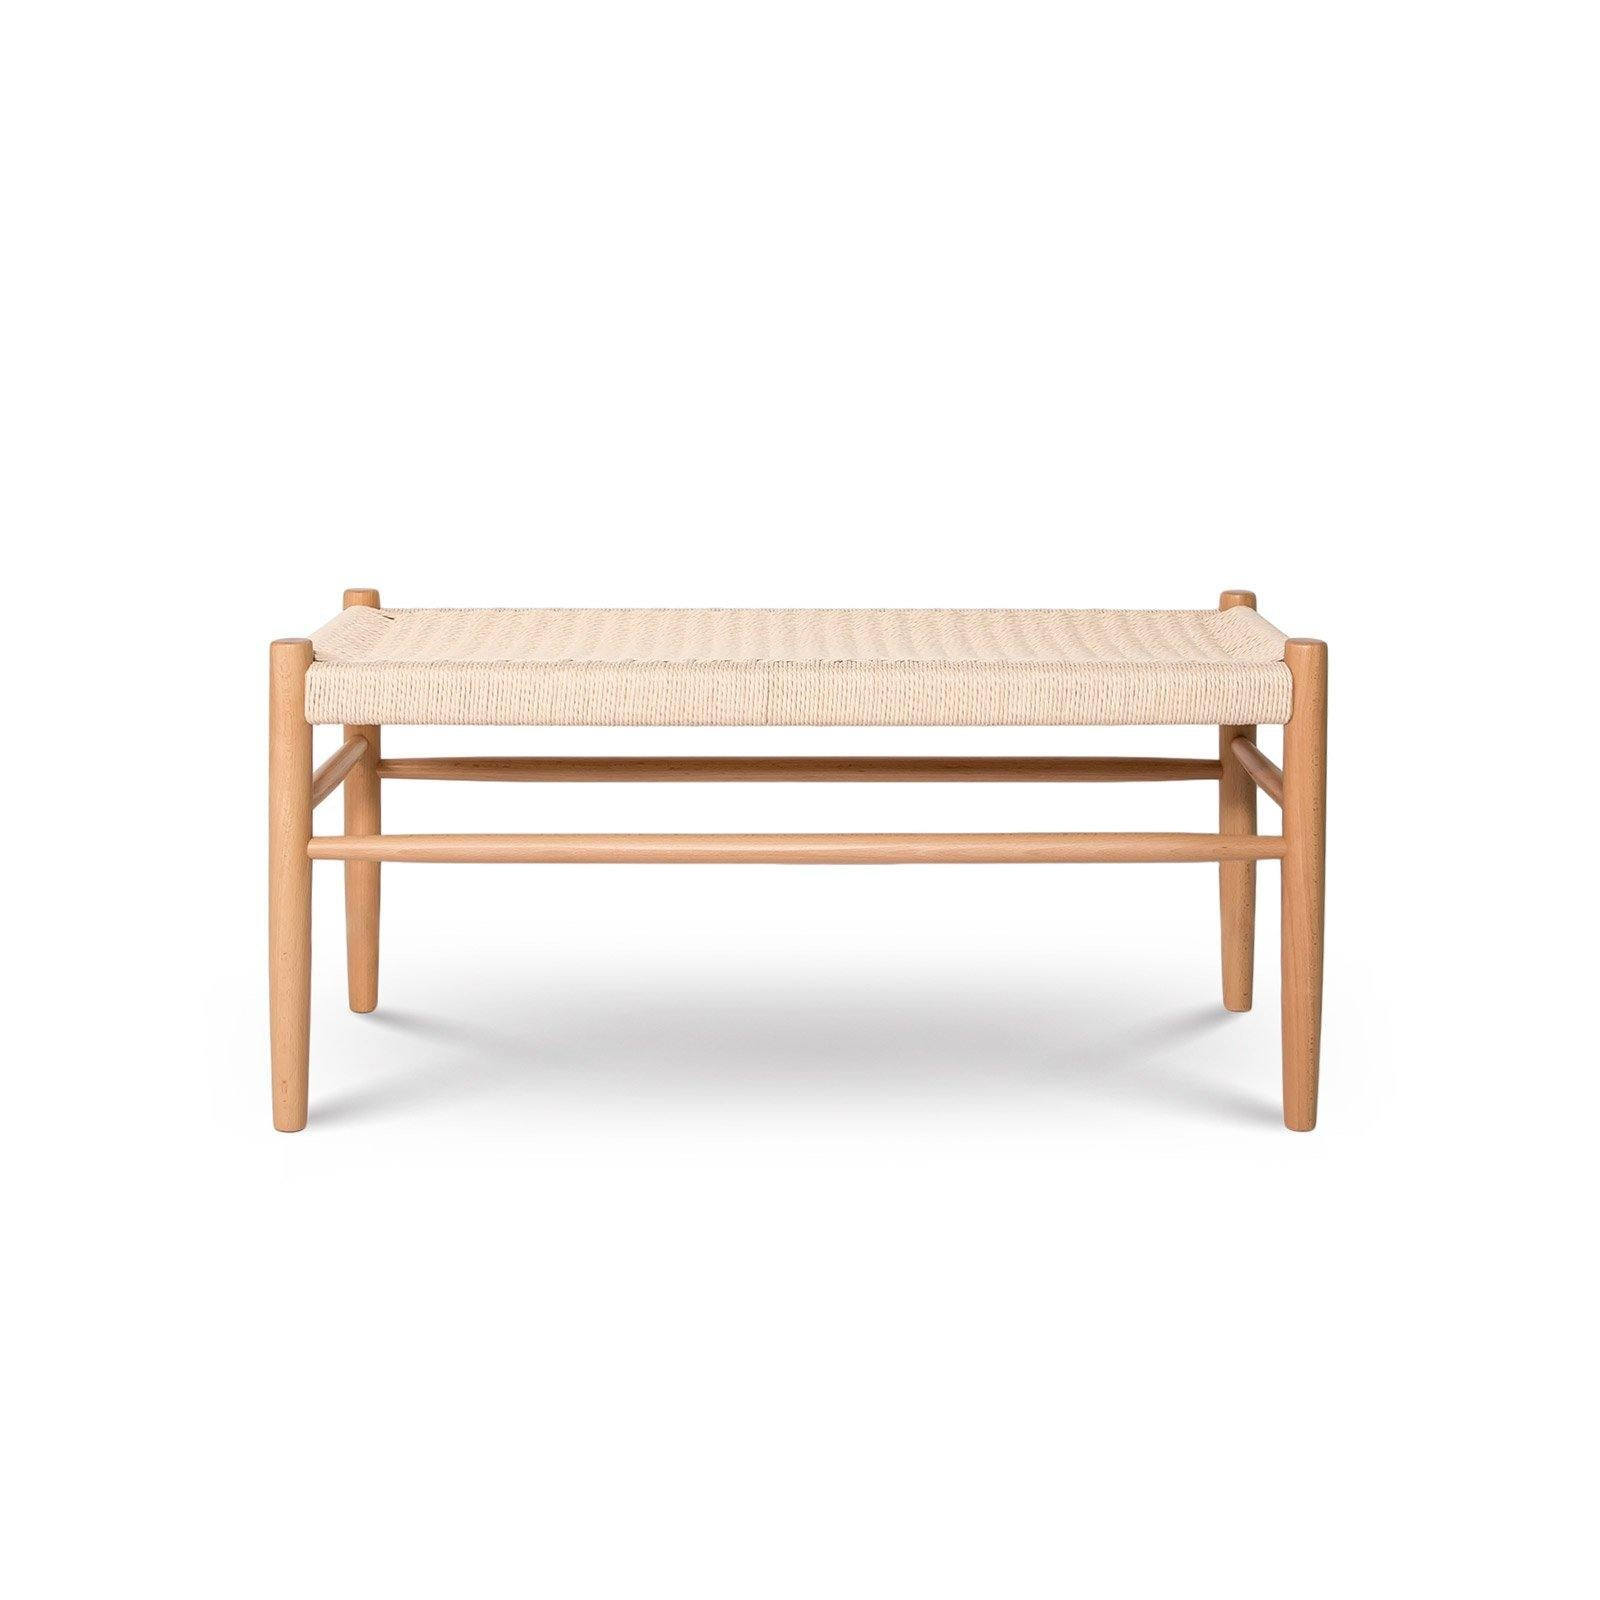 Corsica Bench – Beech Wood - Reimagine Designs